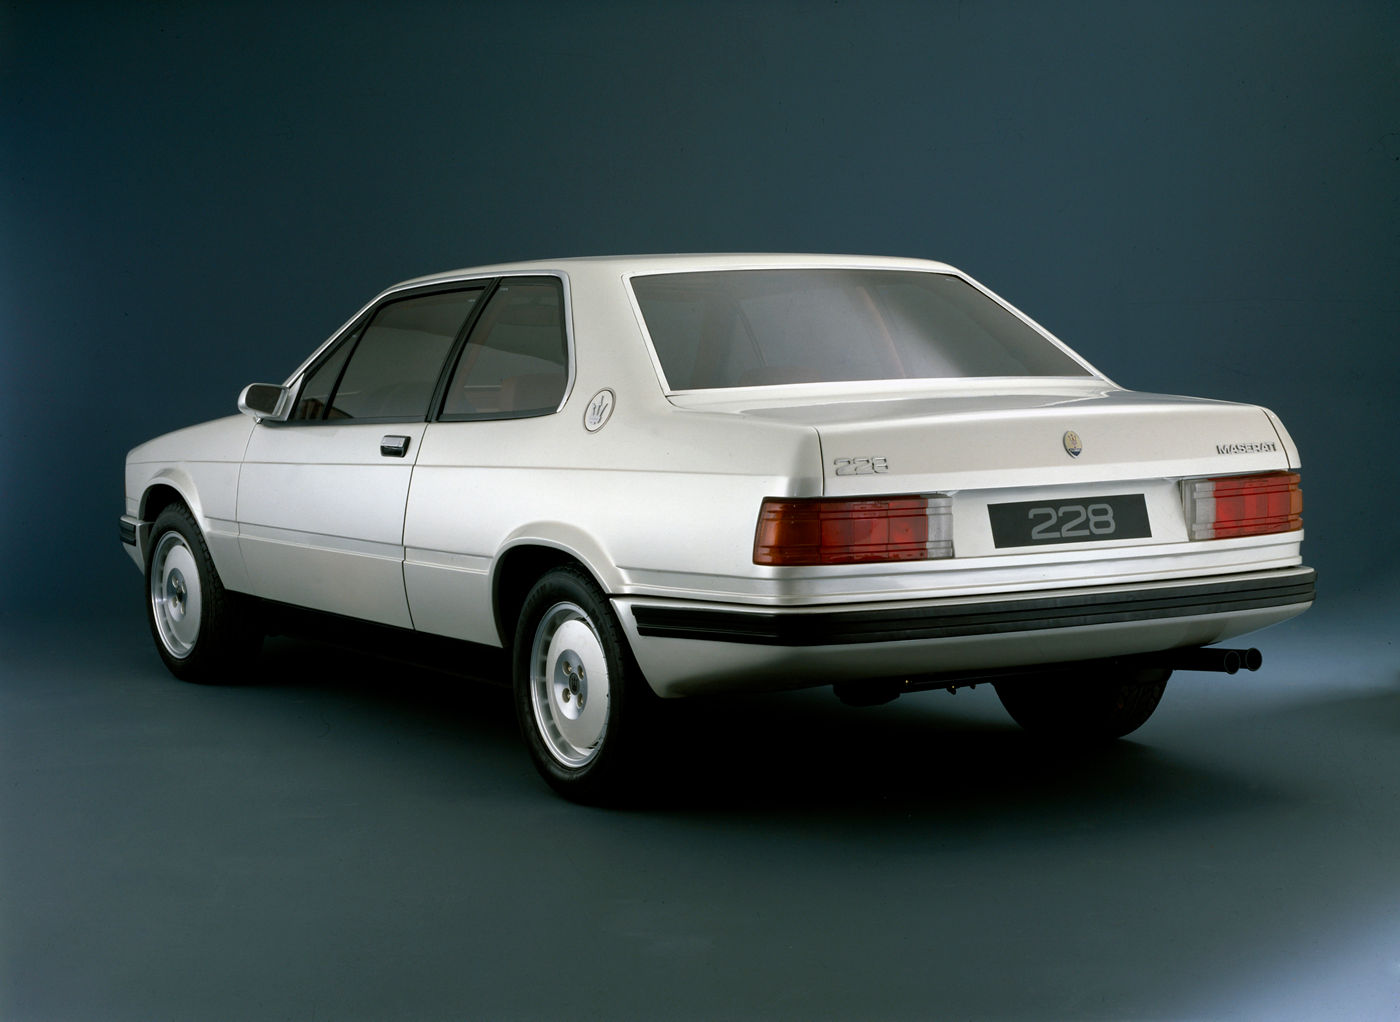 1987 Maserati 228 Biturbo - rear view of the classic car model in white